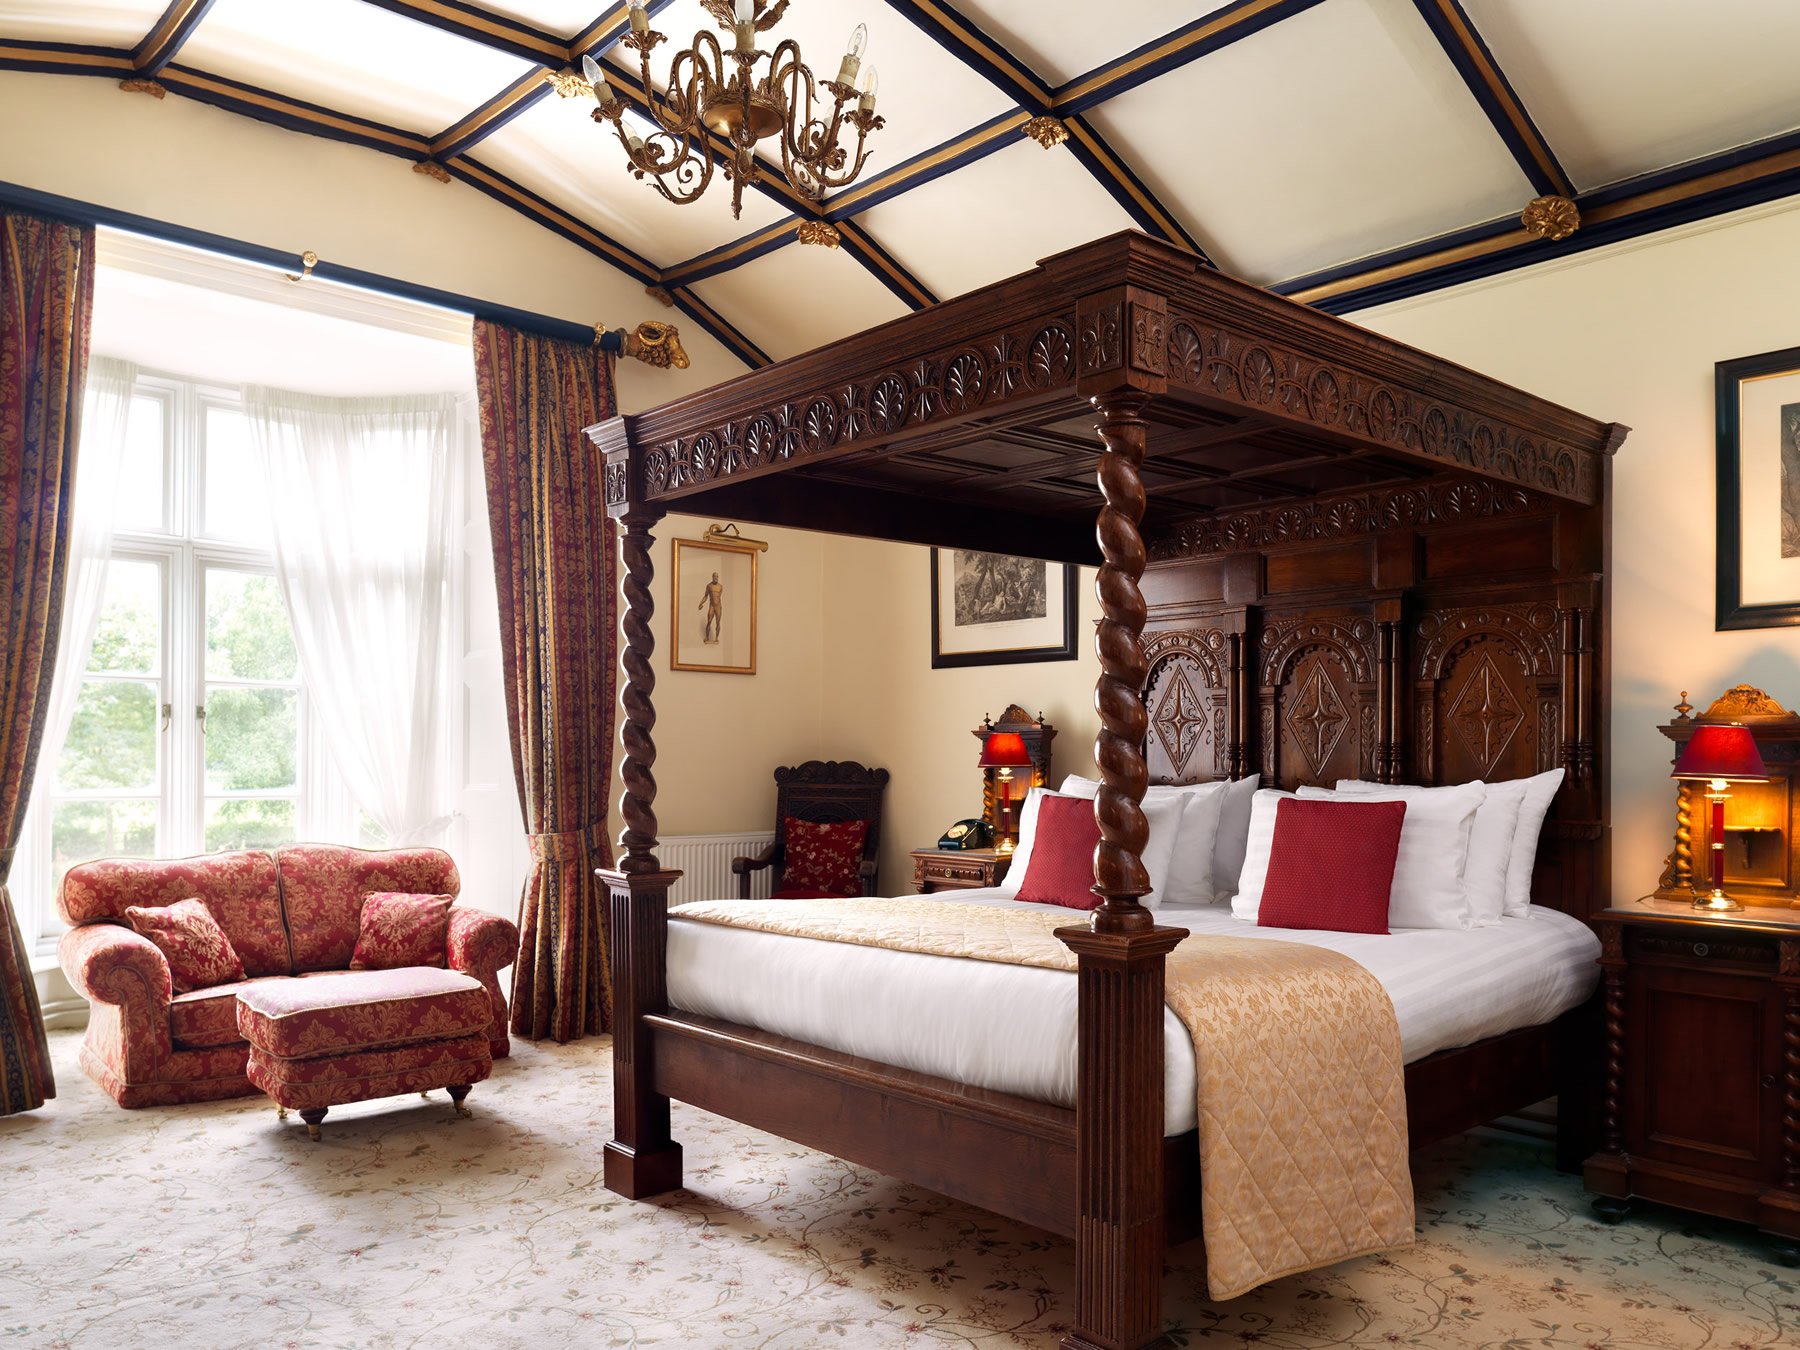 Rooms at The Priory Hotel, Caerleon